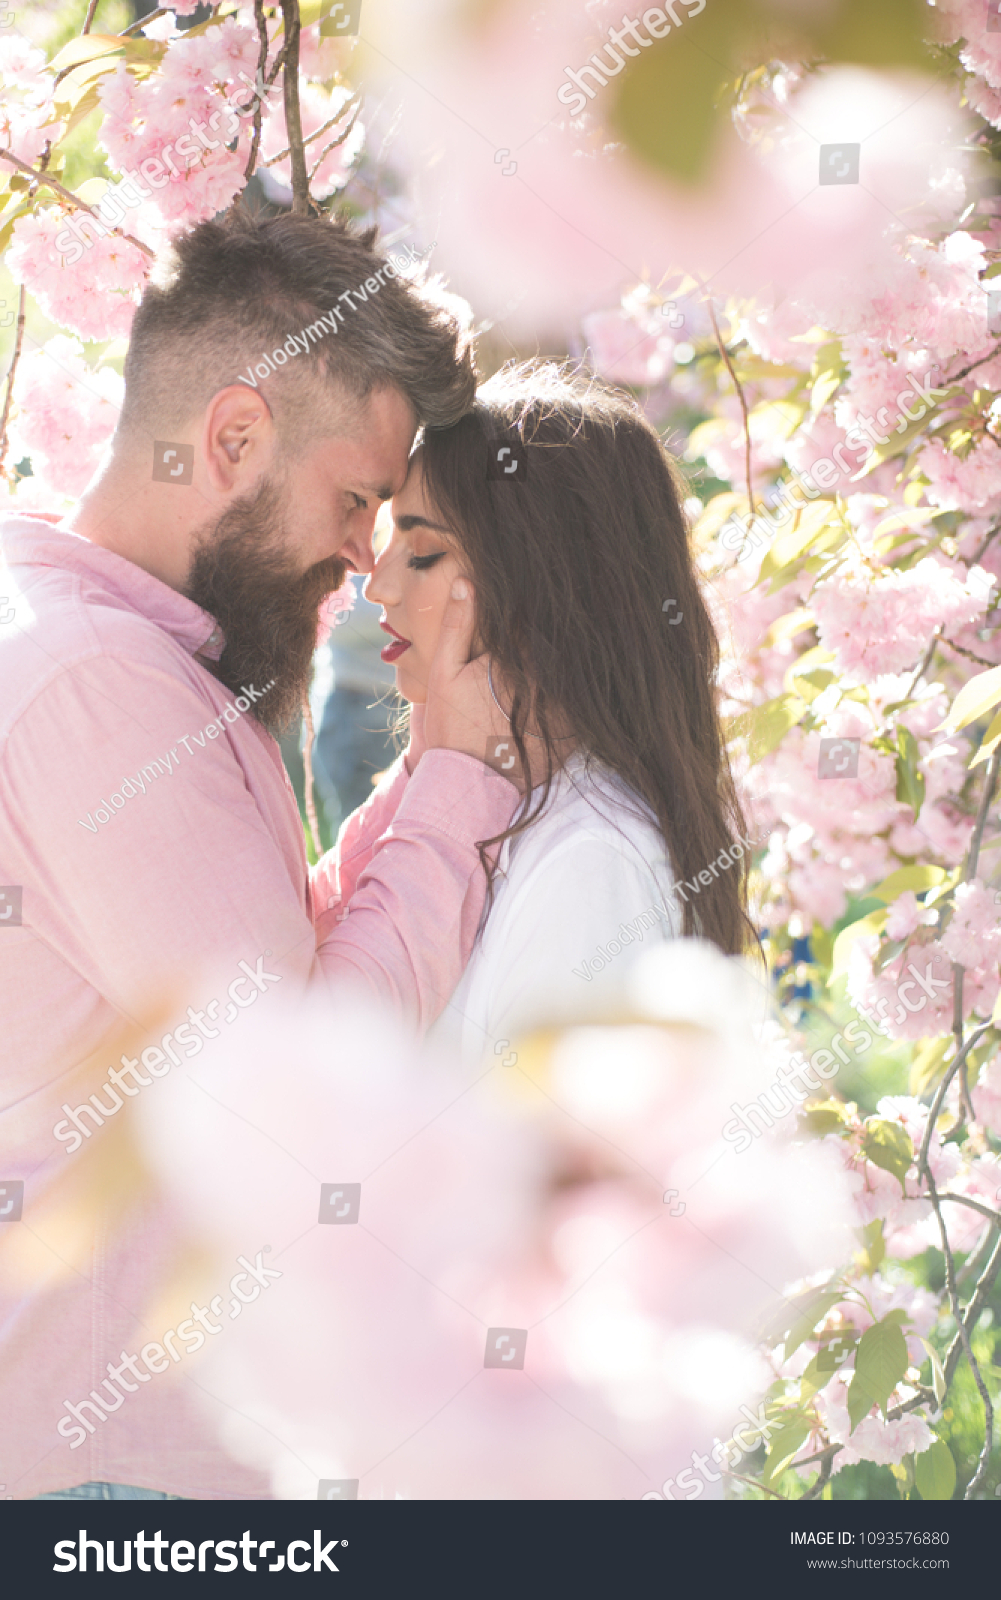 Cherry blossom dating love take a dating quiz